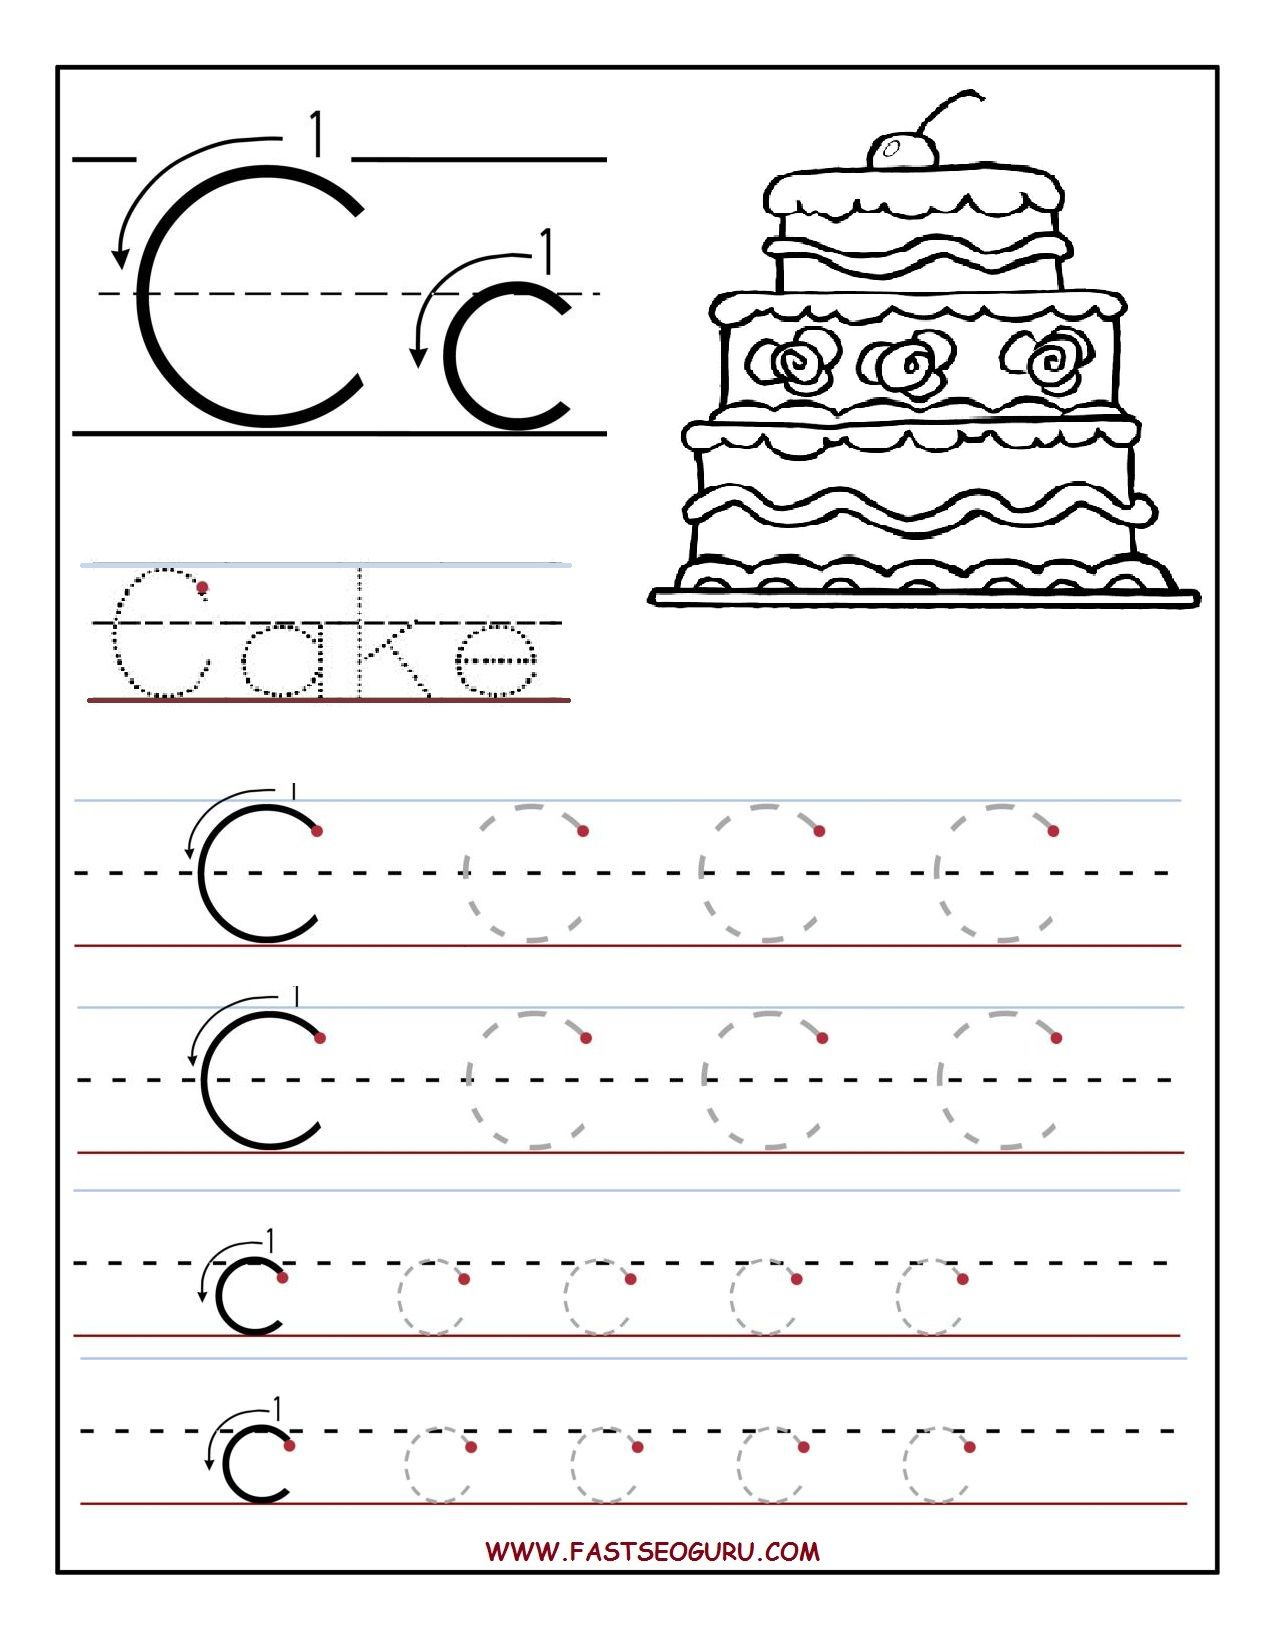 Printable Letter C Tracing Worksheets For Preschool intended for Letter C Tracing Printable